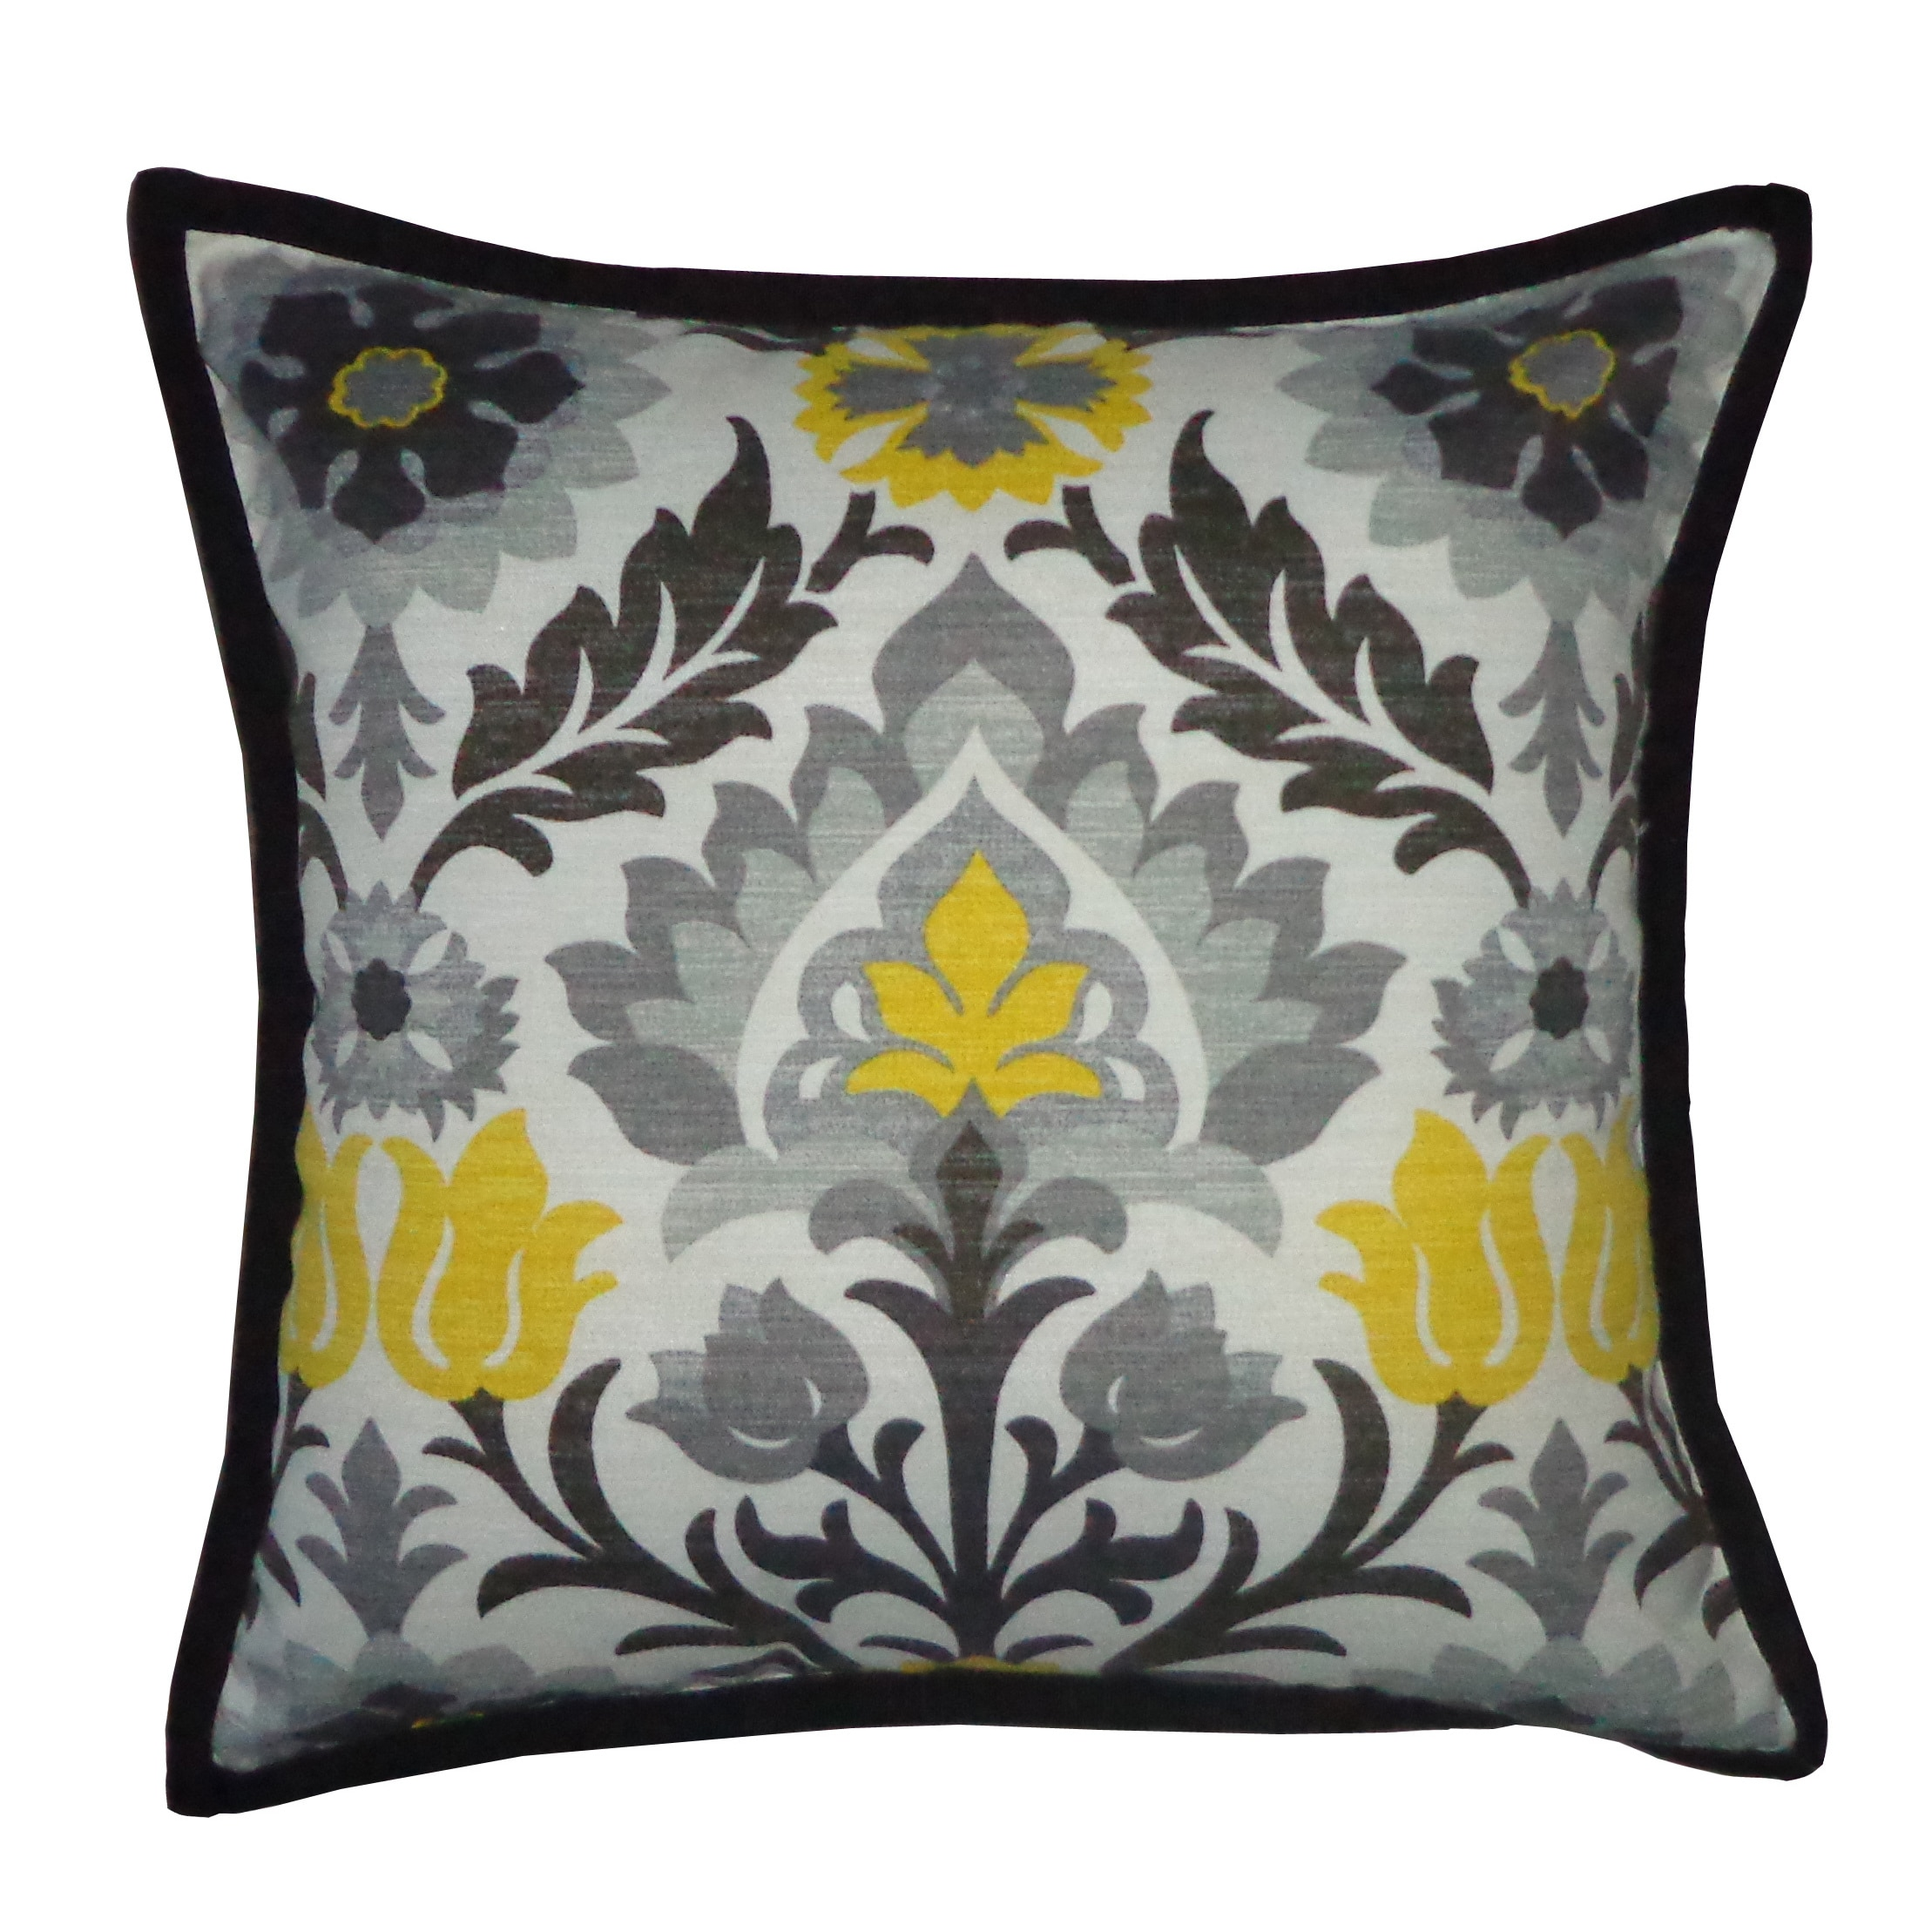 Bumble Bee Pillow (Bumble BEE), Black (Polyester)